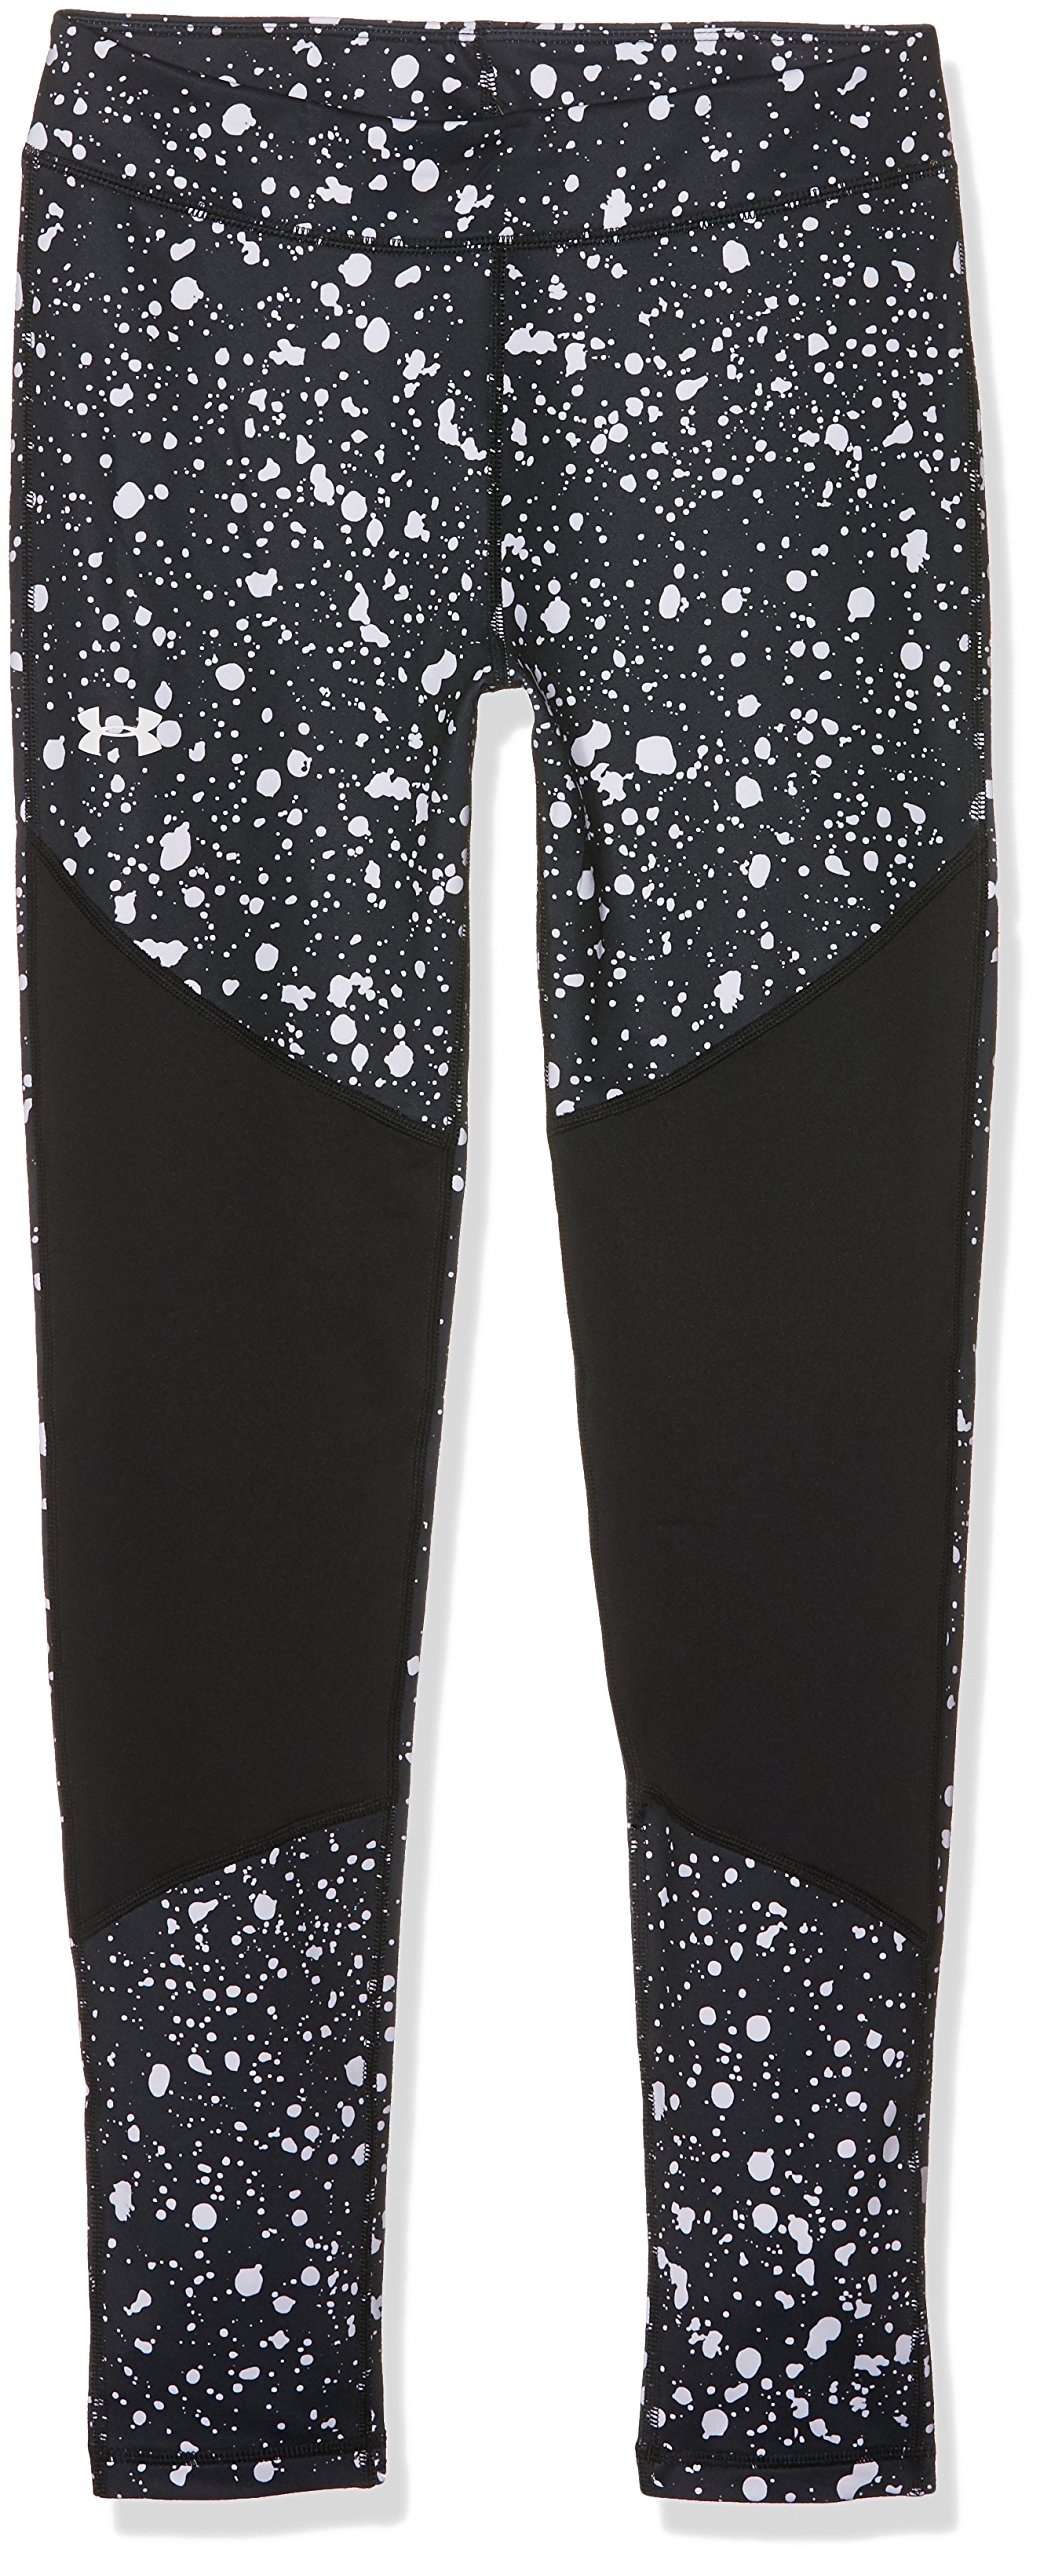 Under Armour Girls' ColdGear Novelty Leggings,Black (001)/White, Youth X-Large by Under Armour